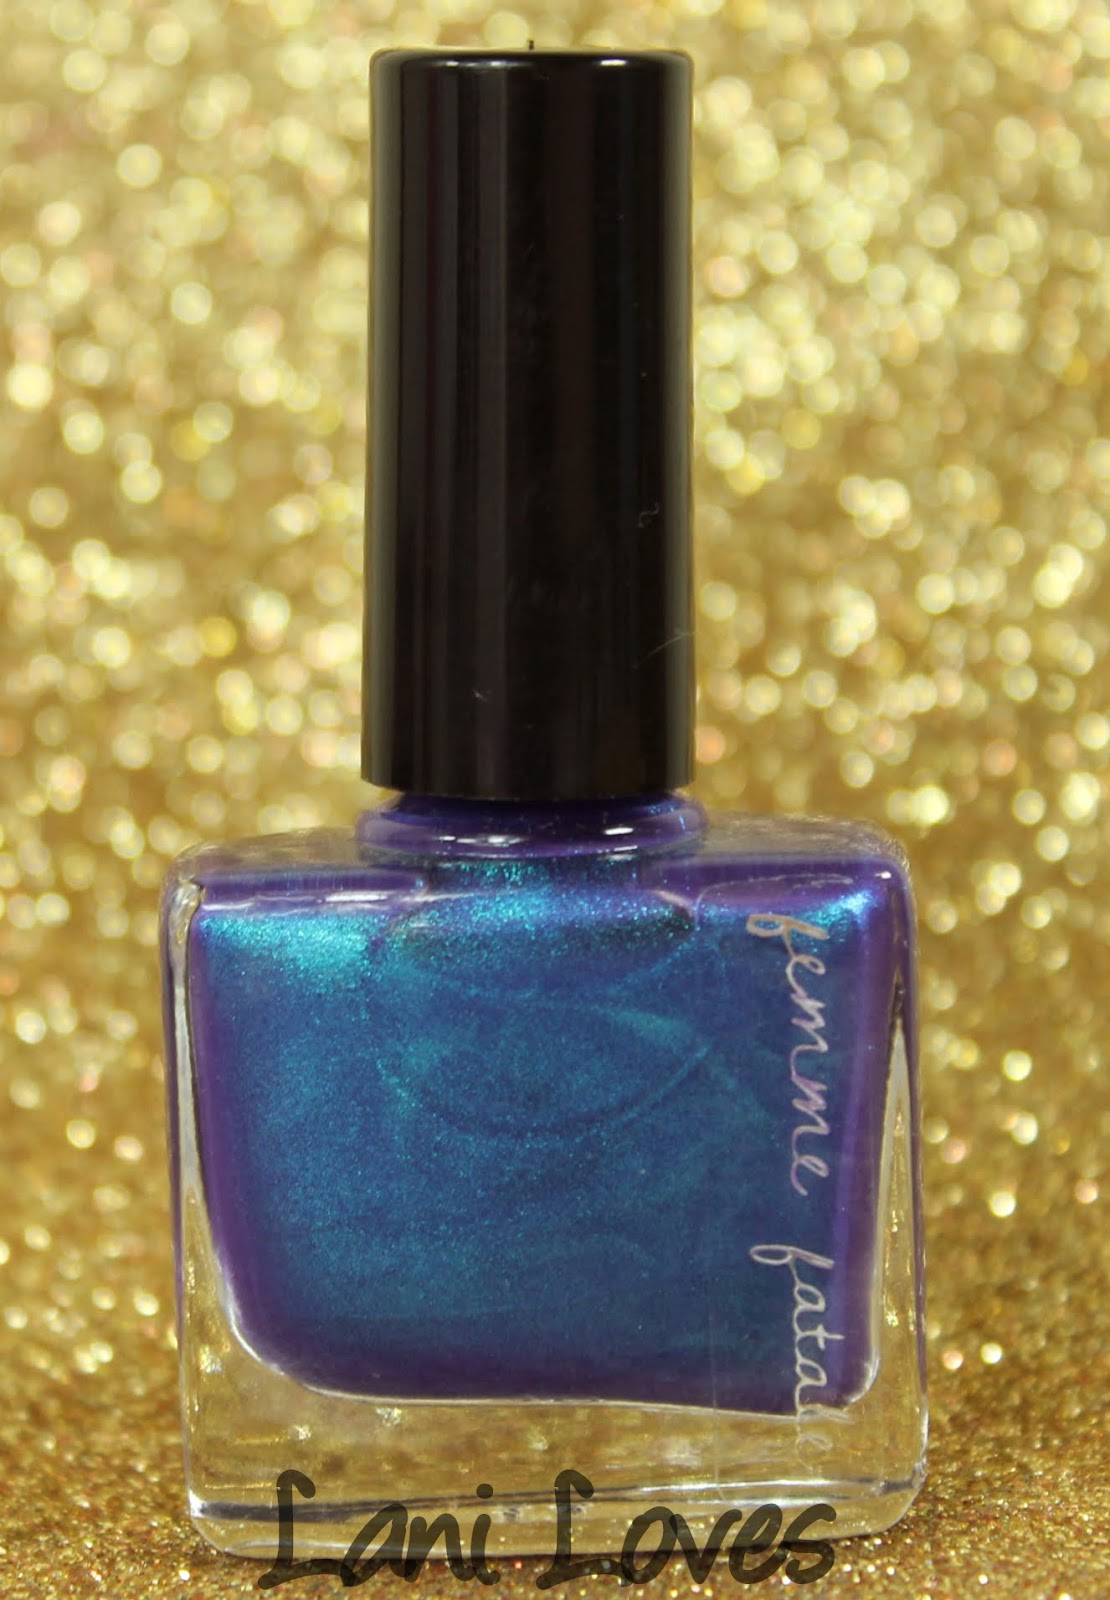 Femme Fatale Cosmetics Under the Waters nail polish swatches & review